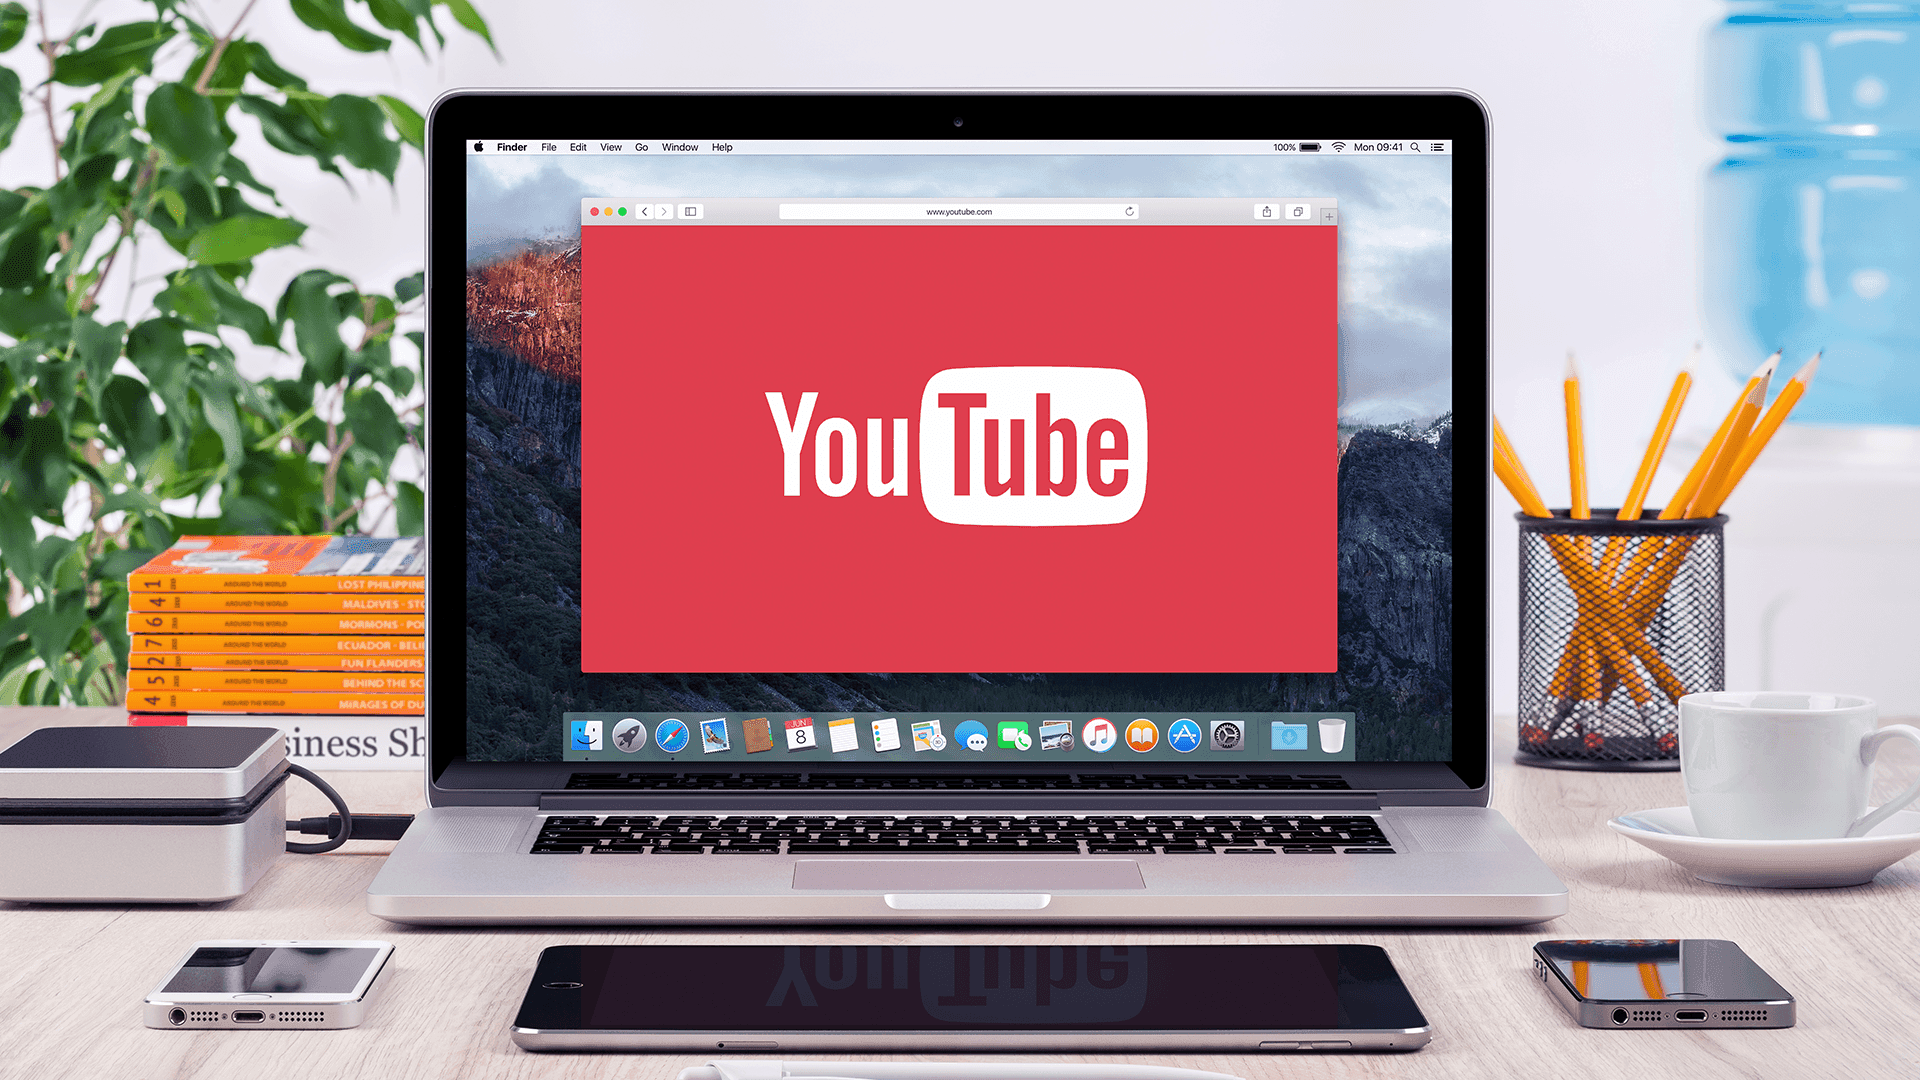 YouTube - Article by Darvideo